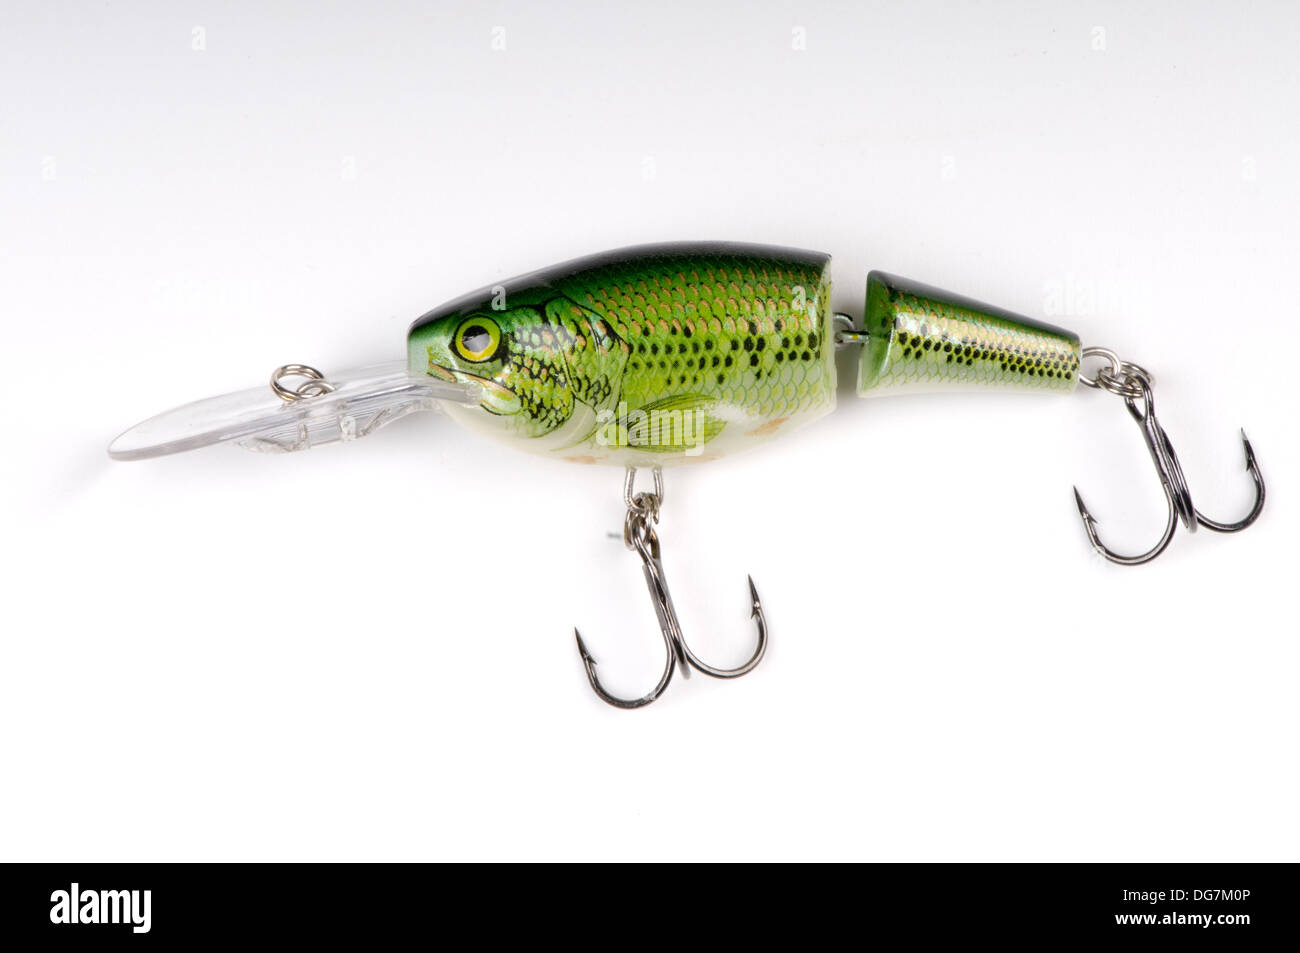 Wobler Hobbies Personal Accessory Love At First Sight Equipment Troll Decoy spoon-bait Wobbler Carnivore Treble Sports And Fitne - Stock Image